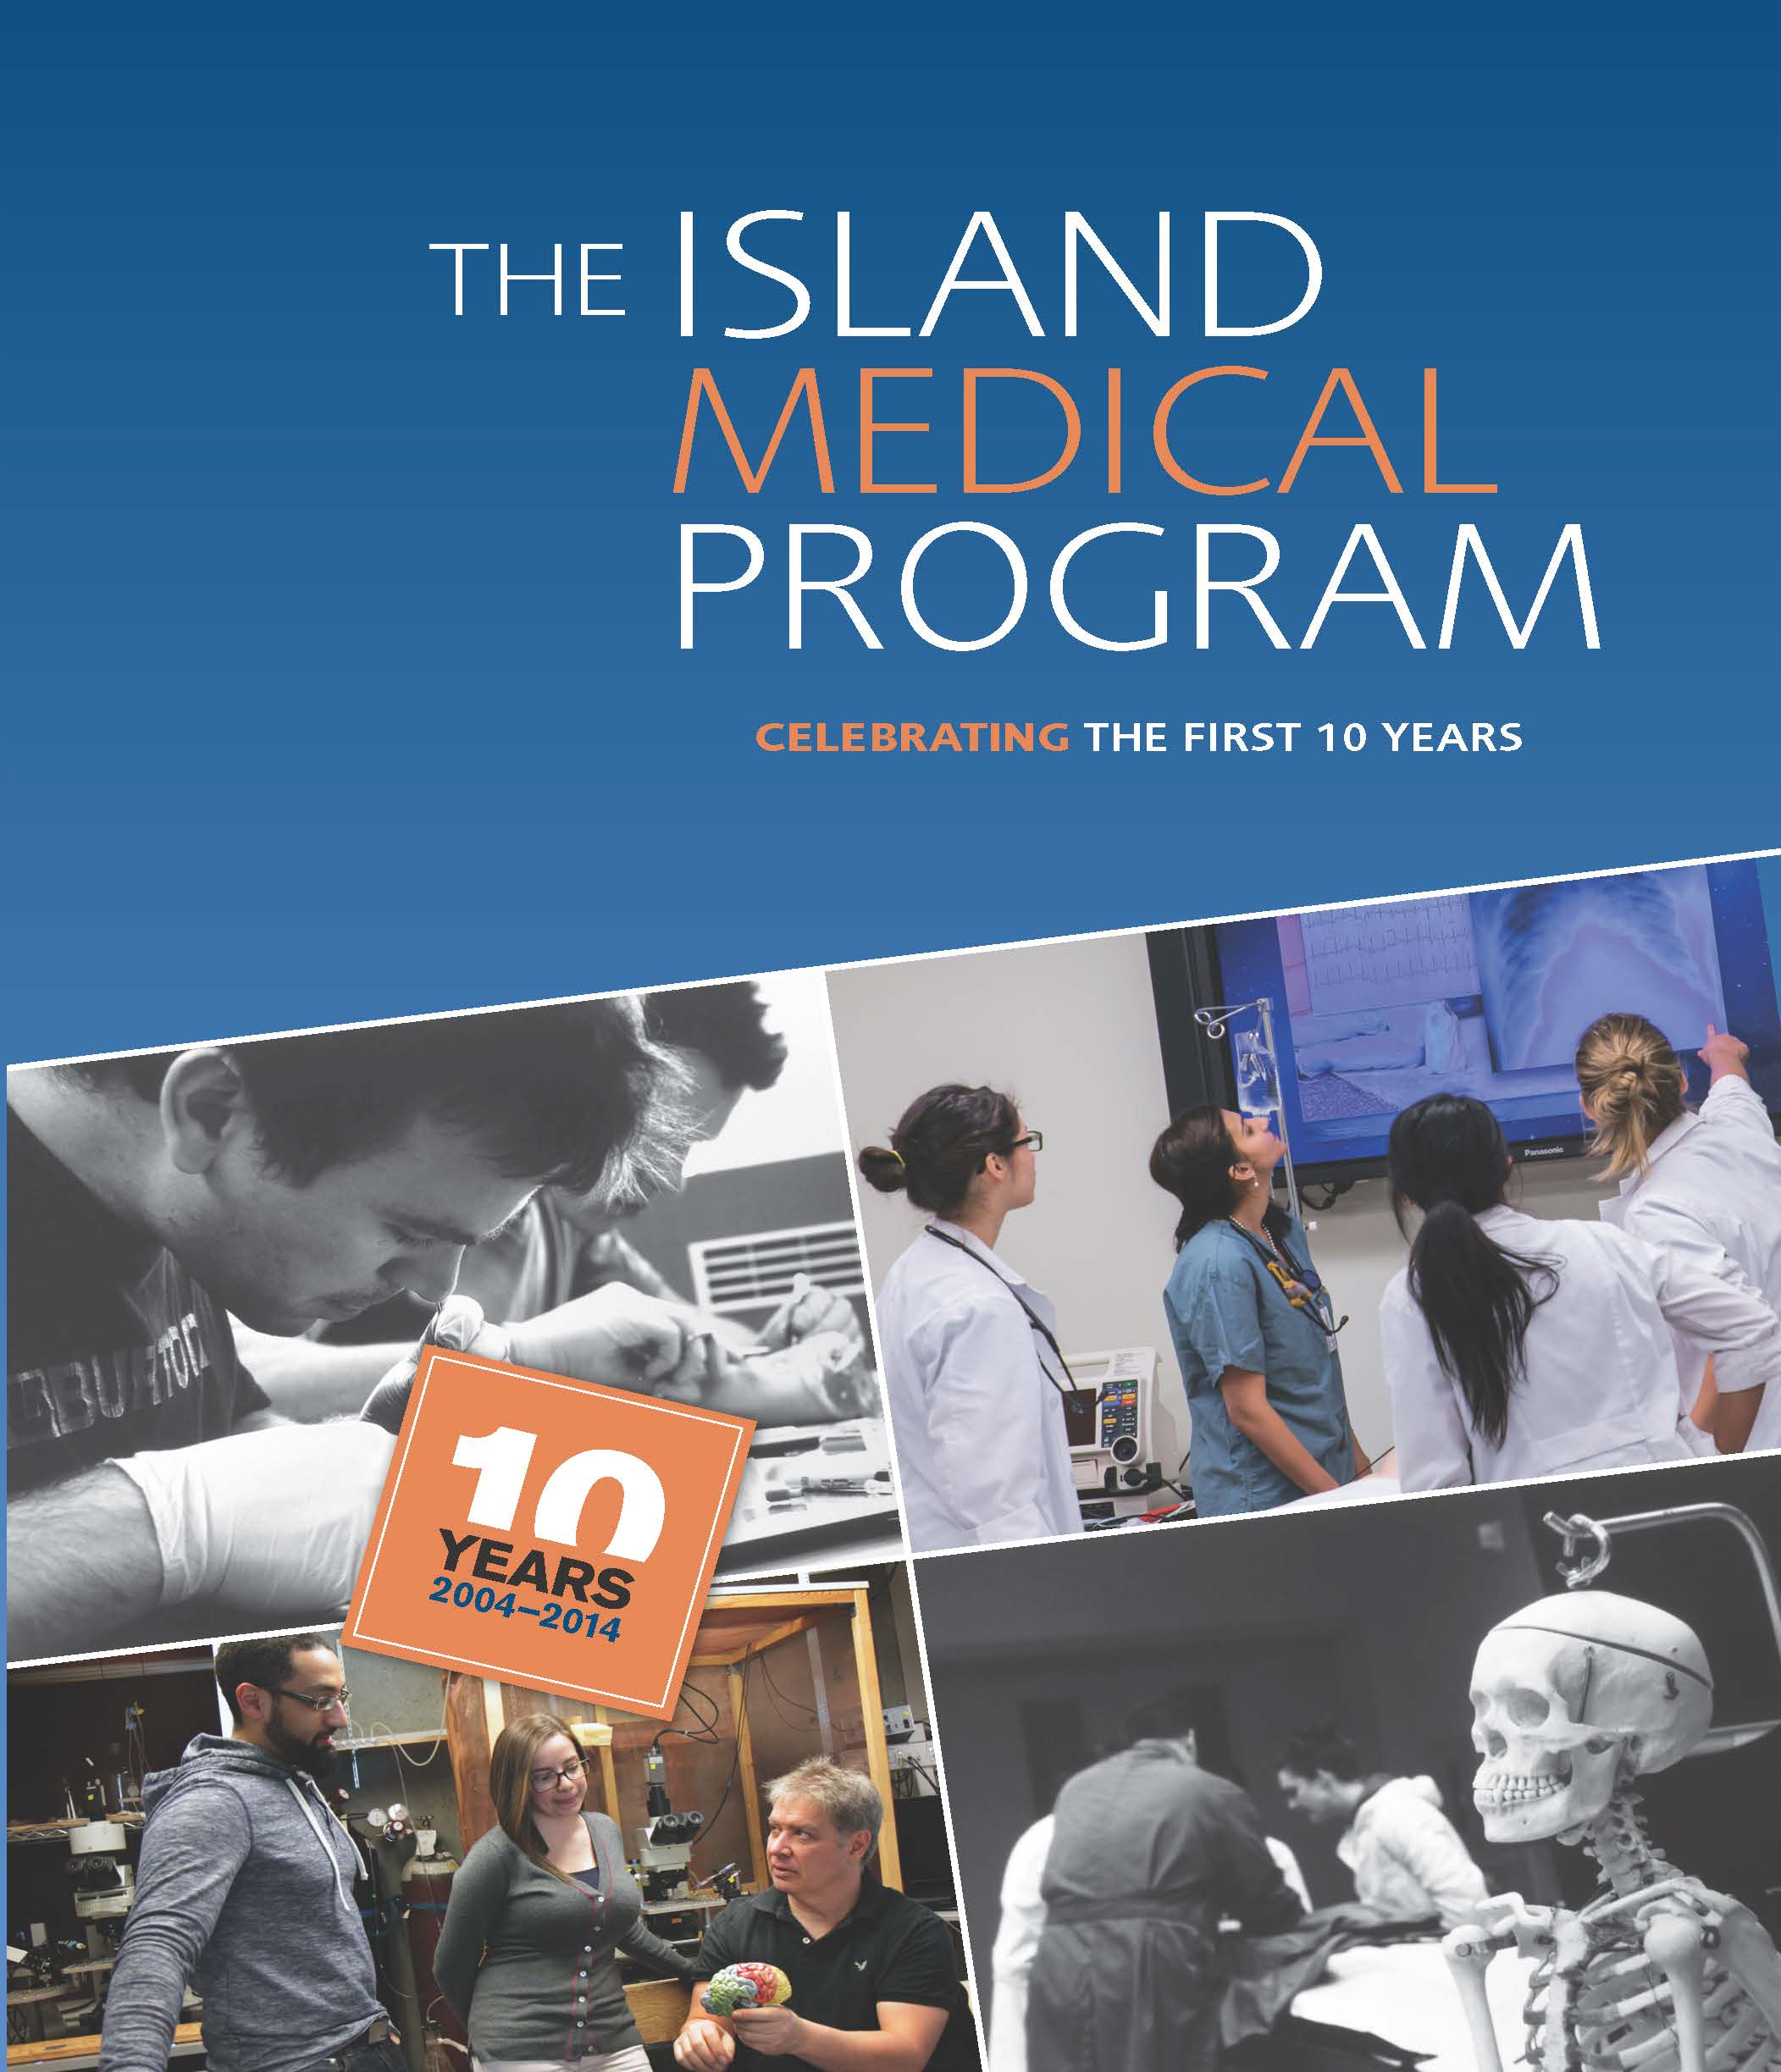 Photos By Ted Grant Enrich A Book Celebrating The First 10 Years Of The Island Medical Program.